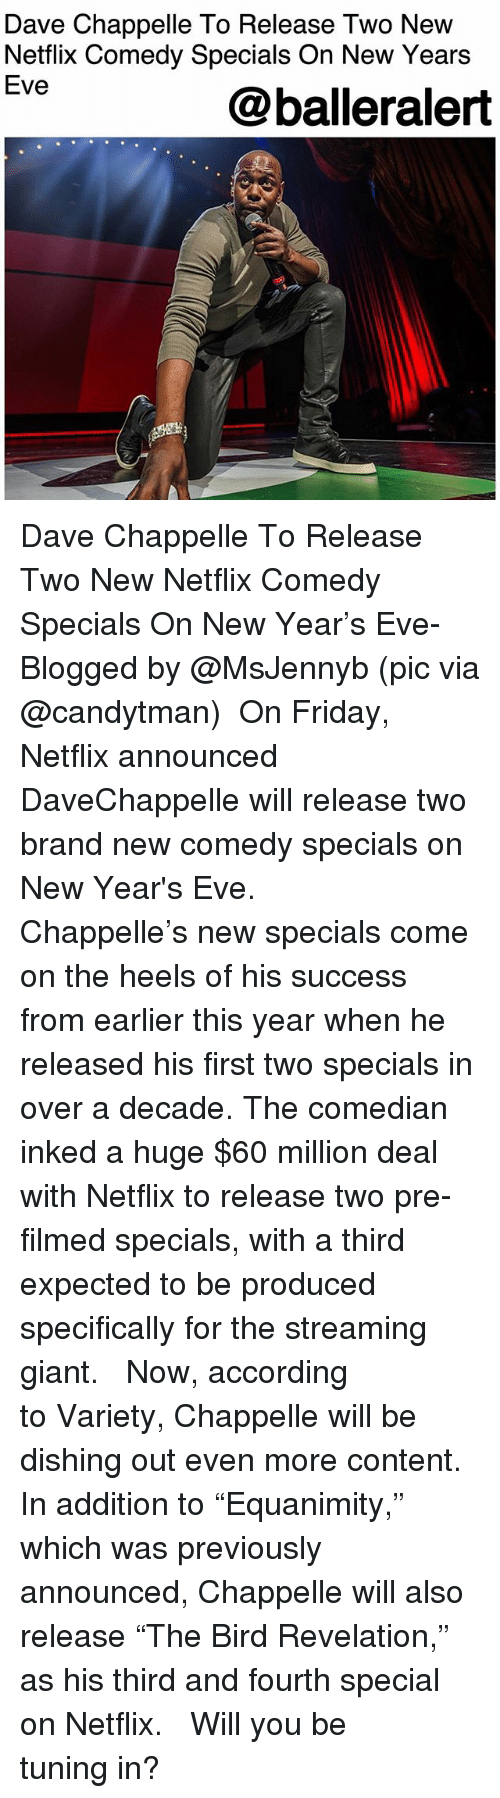 """Dave Chappelle: Dave Chappelle To Release Two New  Netflix Comedy Specials On New Years  Eve  @balleralert Dave Chappelle To Release Two New Netflix Comedy Specials On New Year's Eve- Blogged by @MsJennyb (pic via @candytman) ⠀⠀⠀⠀⠀⠀⠀ On Friday, Netflix announced DaveChappelle will release two brand new comedy specials on New Year's Eve. ⠀⠀⠀⠀⠀⠀⠀ ⠀⠀⠀⠀⠀⠀⠀ Chappelle's new specials come on the heels of his success from earlier this year when he released his first two specials in over a decade. The comedian inked a huge $60 million deal with Netflix to release two pre-filmed specials, with a third expected to be produced specifically for the streaming giant. ⠀⠀⠀⠀⠀⠀⠀ ⠀⠀⠀⠀⠀⠀⠀ Now, according to Variety, Chappelle will be dishing out even more content. In addition to """"Equanimity,"""" which was previously announced, Chappelle will also release """"The Bird Revelation,"""" as his third and fourth special on Netflix. ⠀⠀⠀⠀⠀⠀⠀ ⠀⠀⠀⠀⠀⠀⠀ Will you be tuning in?"""